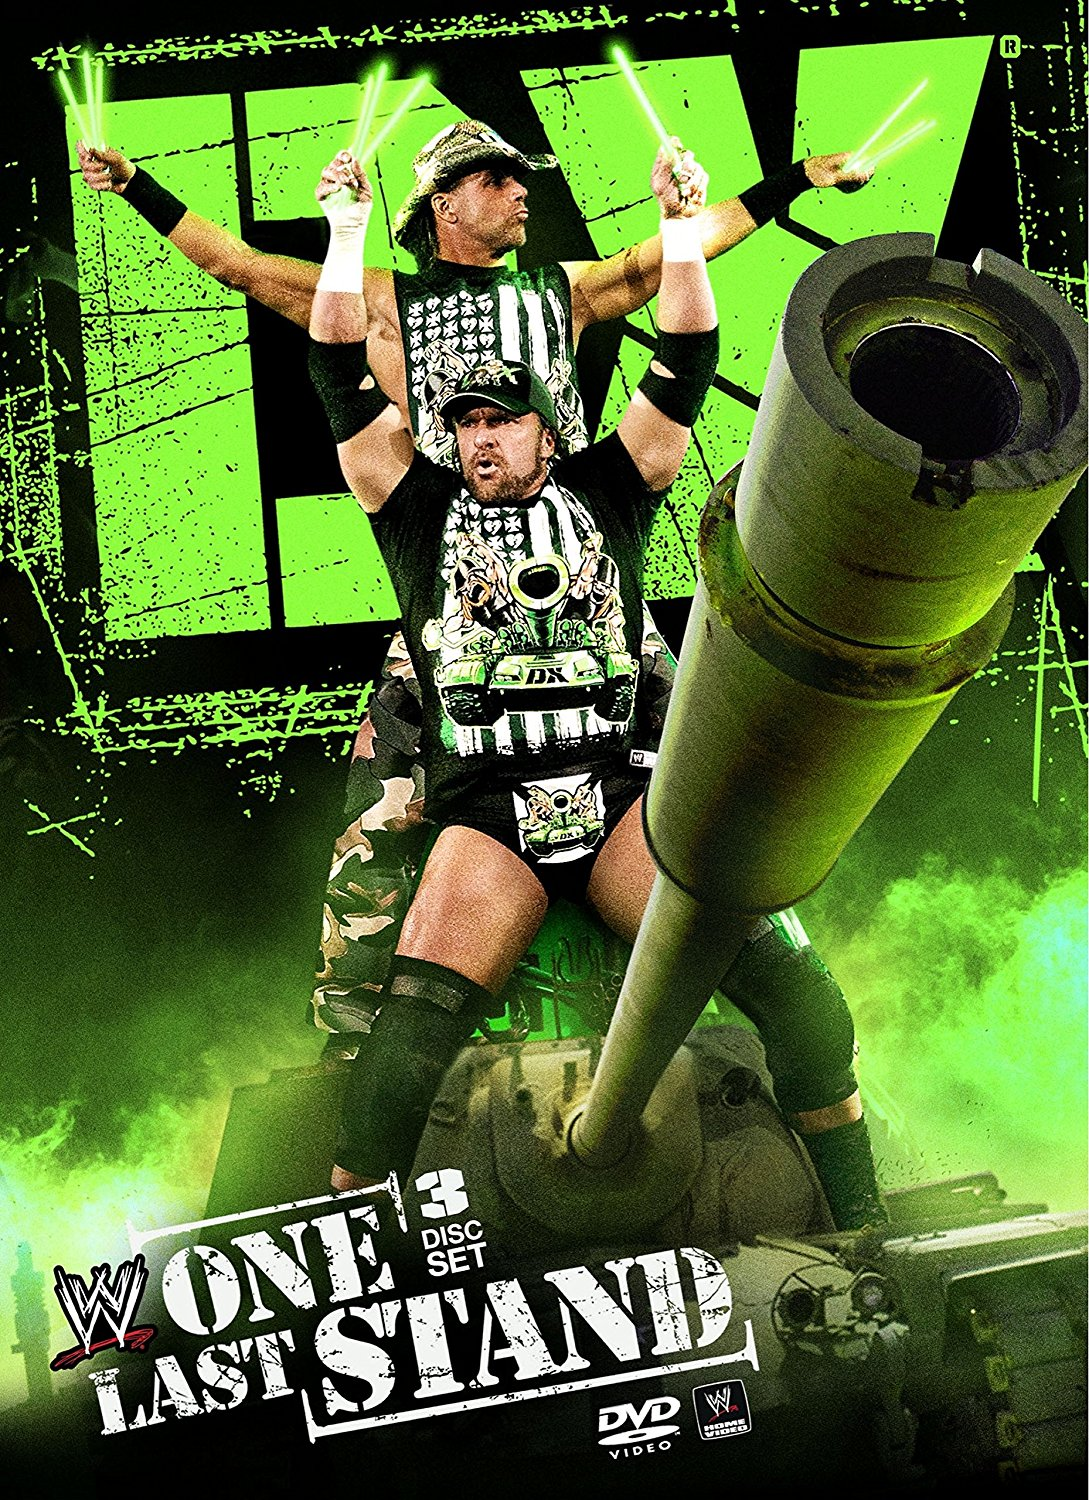 WWE D-Generation X: One Last Stand DVD Cover